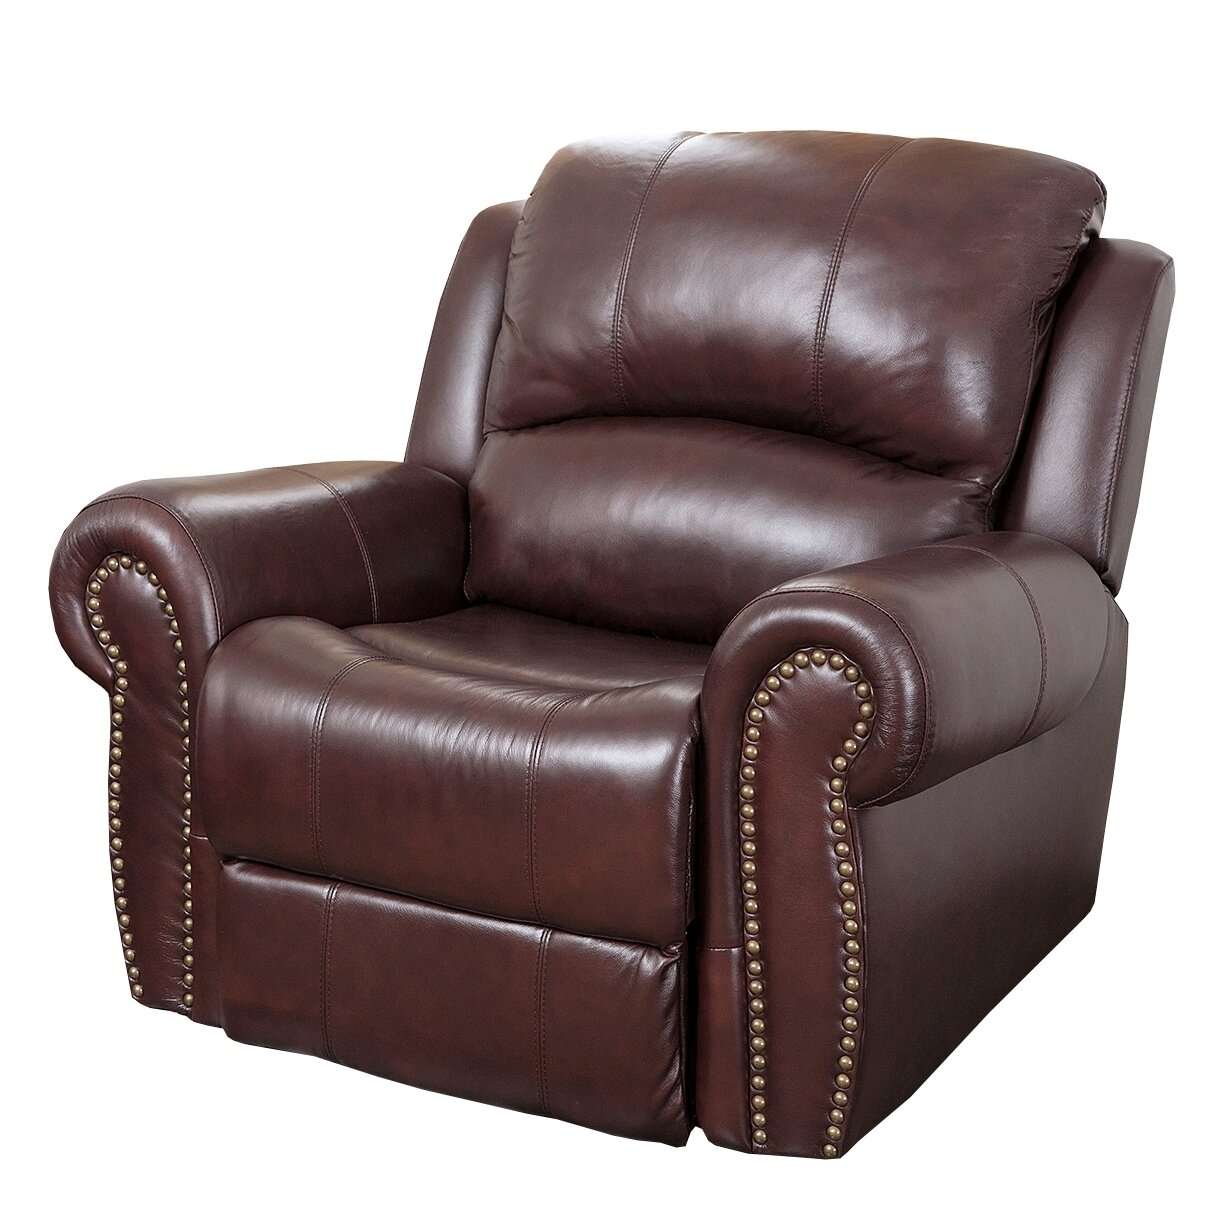 Abbyson living sedona leather chaise recliner reviews for Abbyson living sedona leather chaise recliner